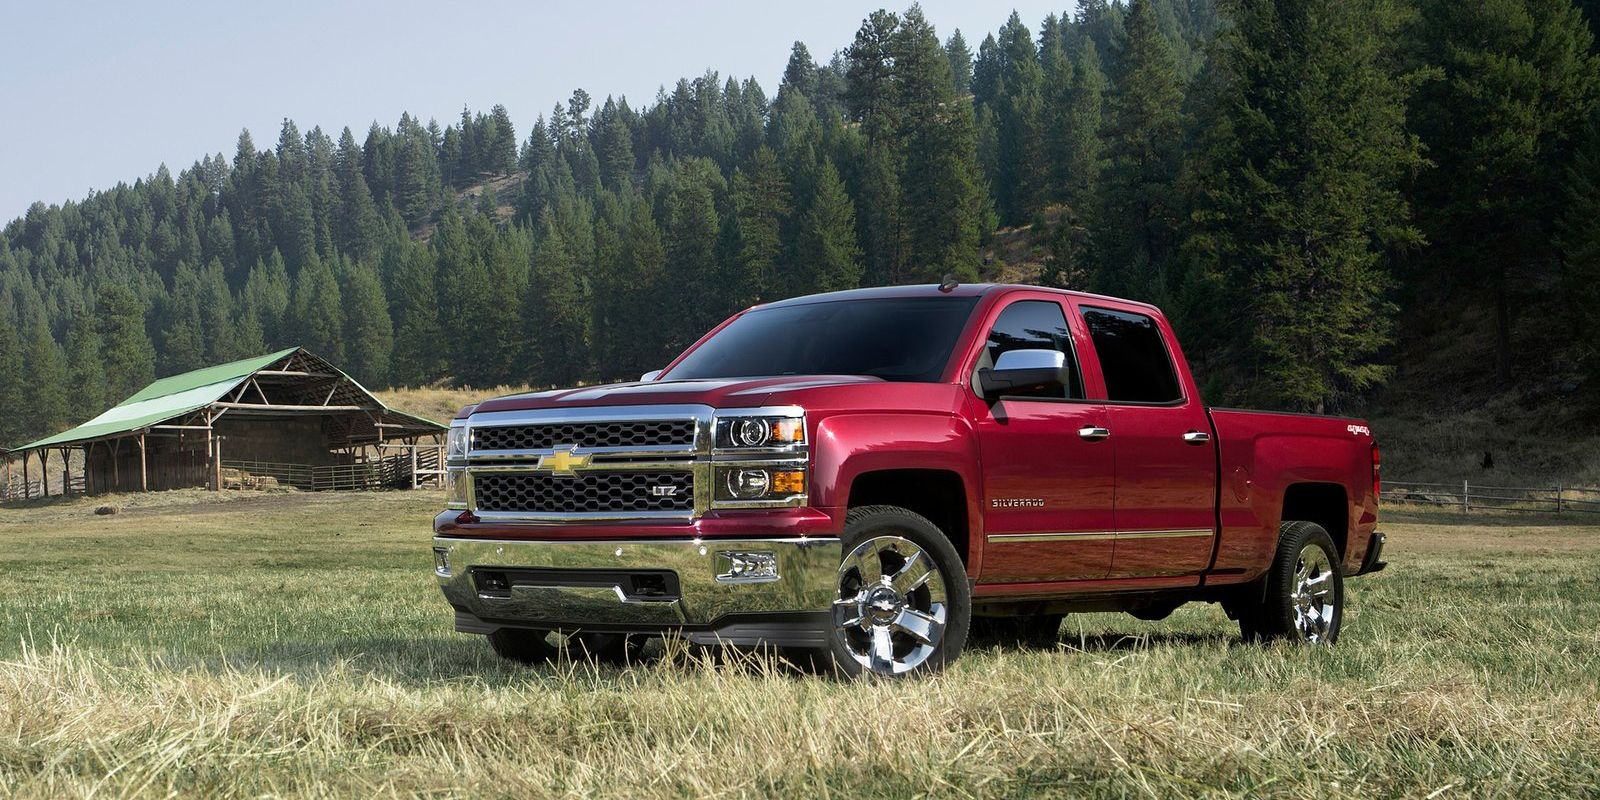 All Chevy chevy 1500 6.2 : 10 Quick Trucks - Quickest Trucks from 0-60 - Road & Track